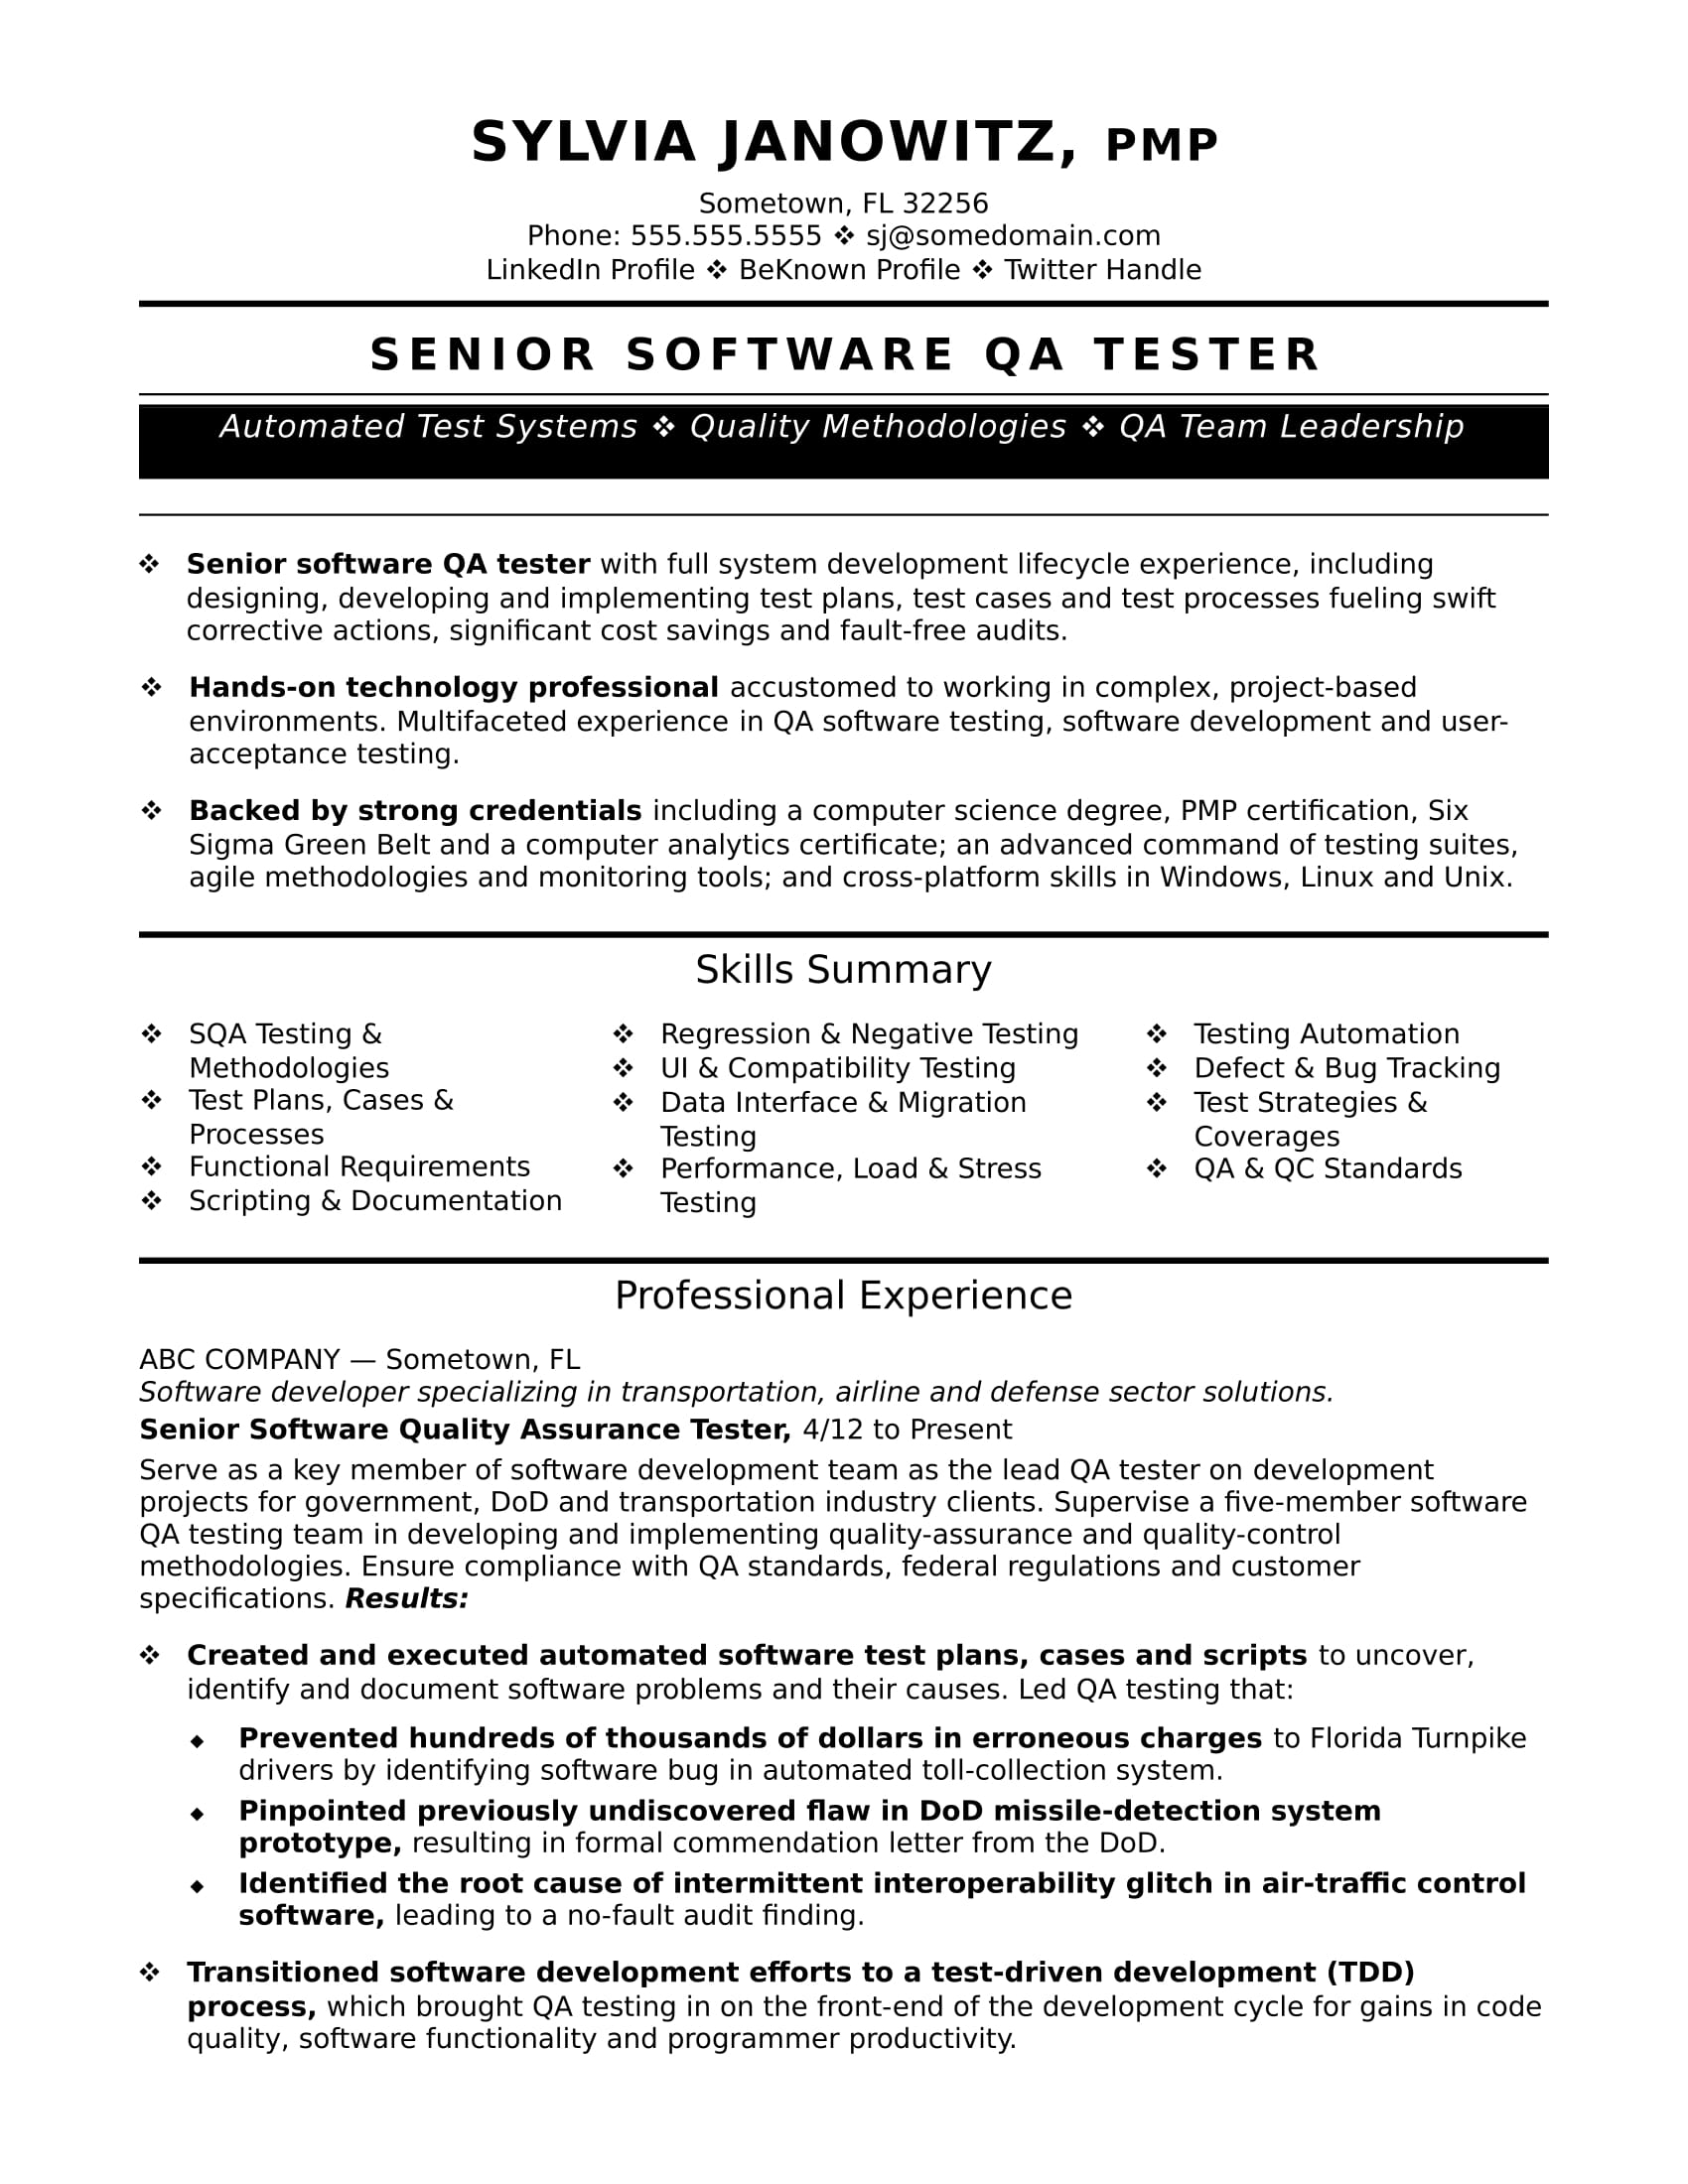 resume Resume For Testing experienced qa software tester resume sample monster com sample